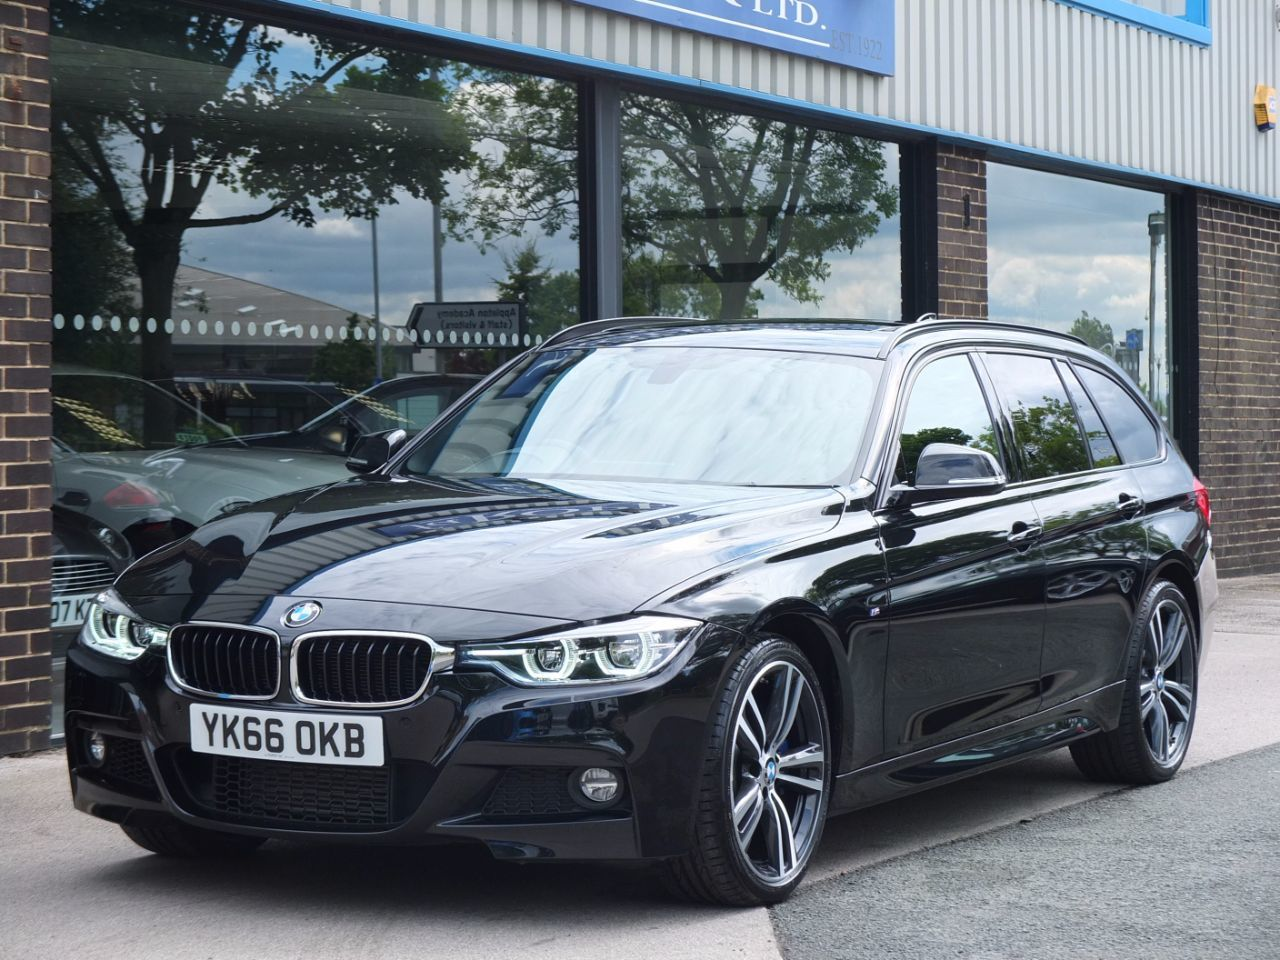 BMW 3 Series 3.0 335d xDrive M Sport Plus Touring Auto Estate Diesel Black Sapphire MetallicBMW 3 Series 3.0 335d xDrive M Sport Plus Touring Auto Estate Diesel Black Sapphire Metallic at fa Roper Ltd Bradford